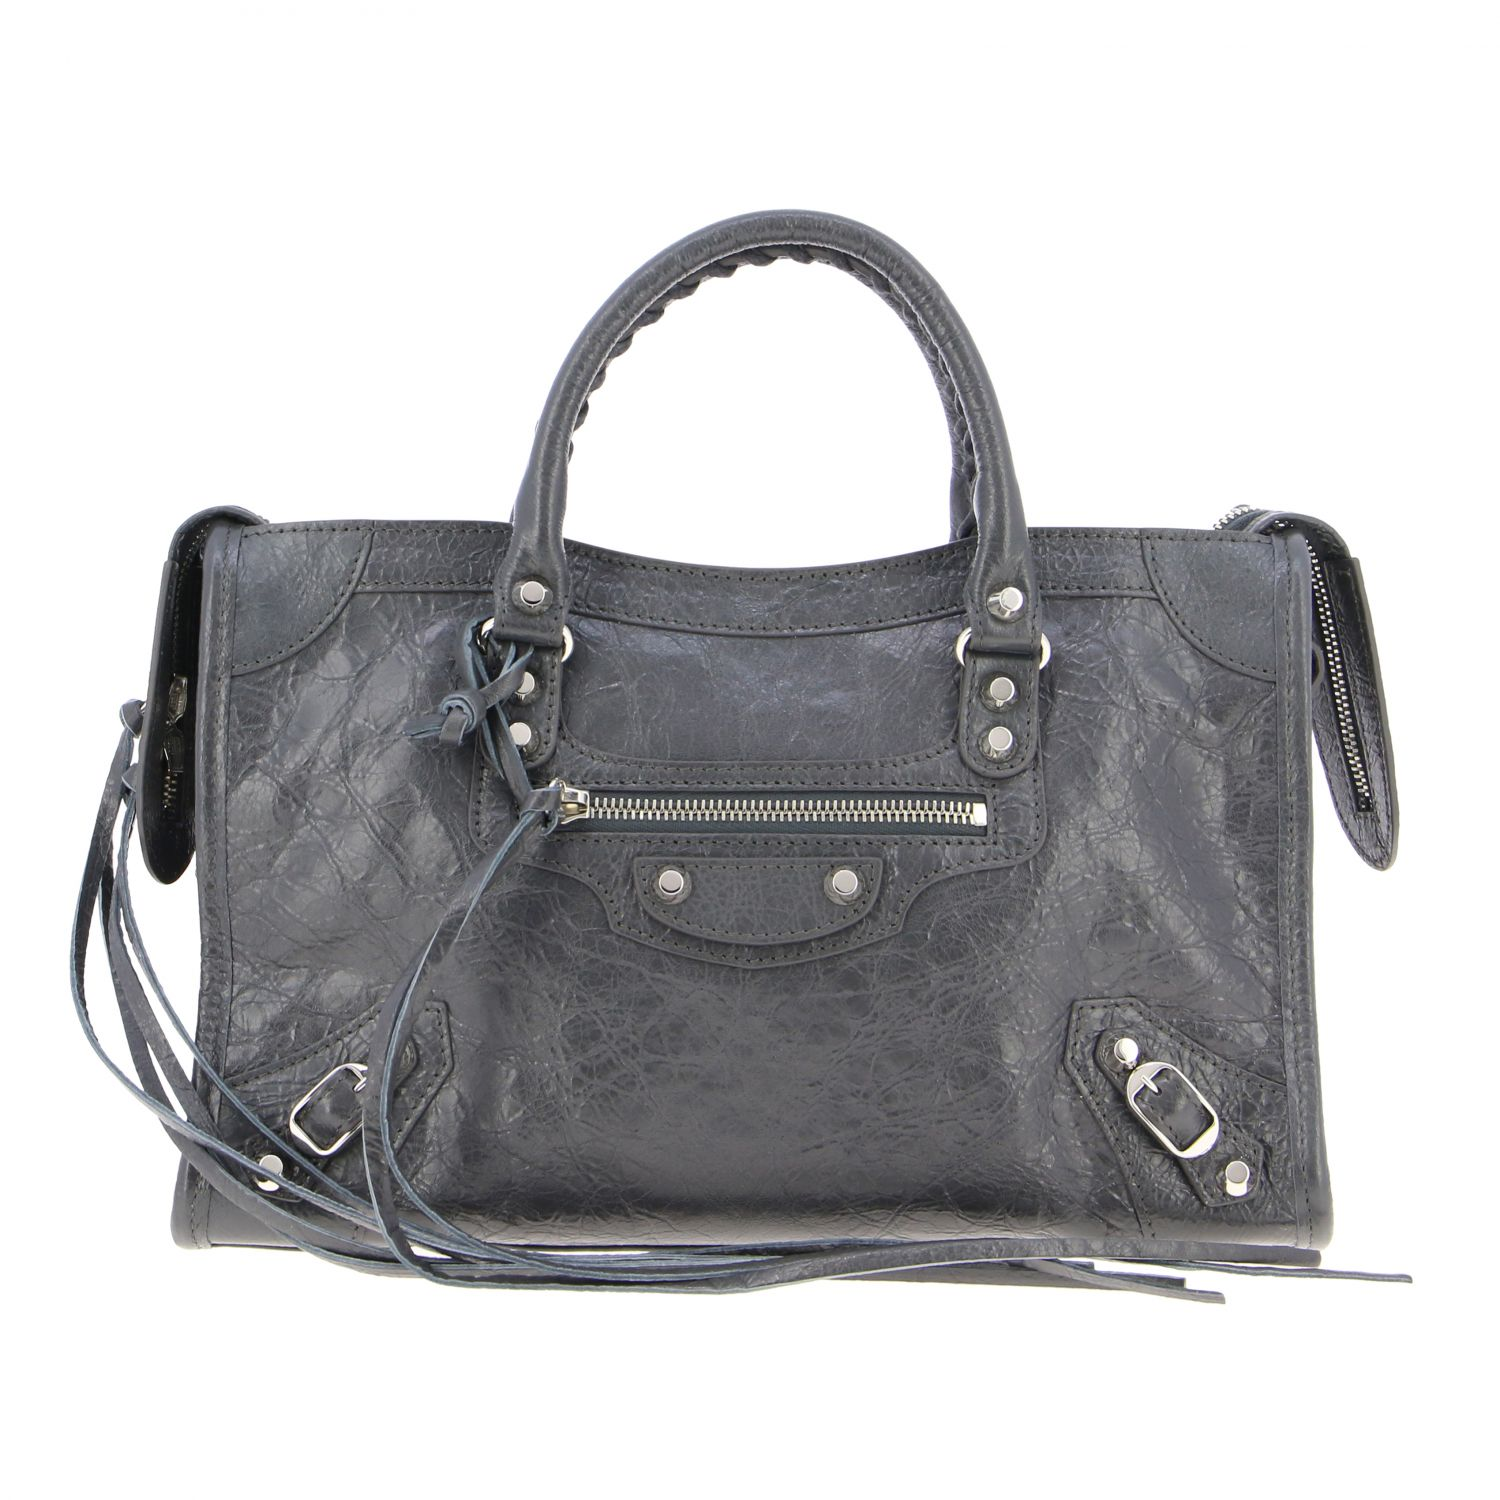 Handbag Balenciaga: Shoulder bag women Balenciaga grey 1